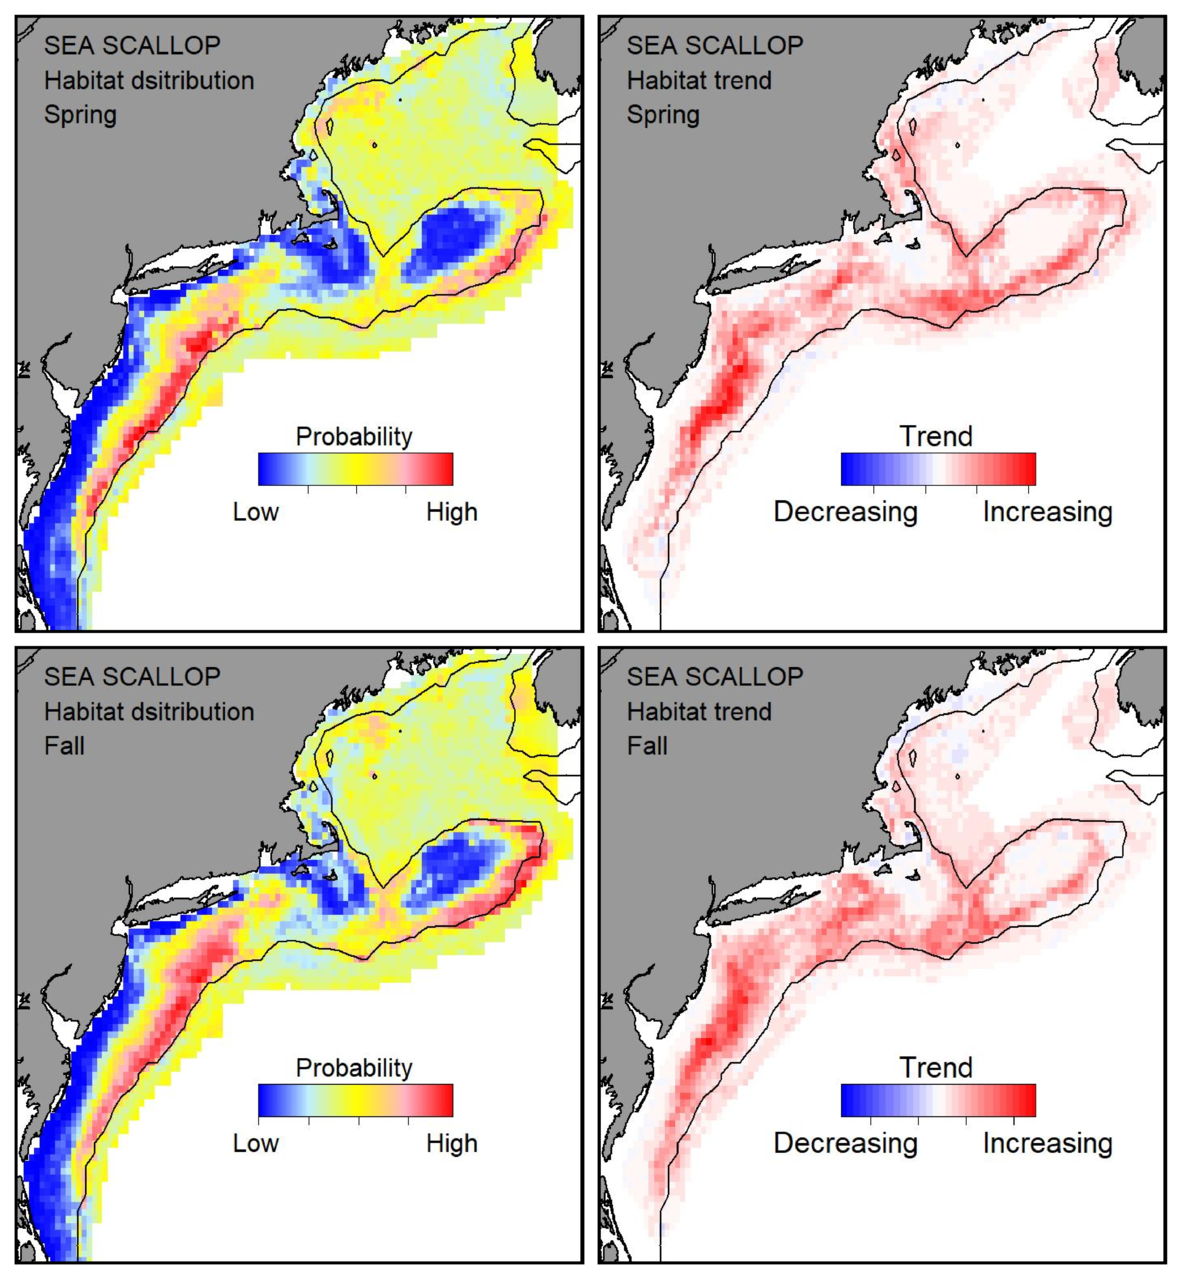 Probable habitat distribution for sea scallop showing the highest concentration and increasing trend in the Gulf of Maine during the spring. Bottom row: Probable habitat distribution for sea scallop showing the highest concentration and increasing trend in the Gulf of Maine during the fall.